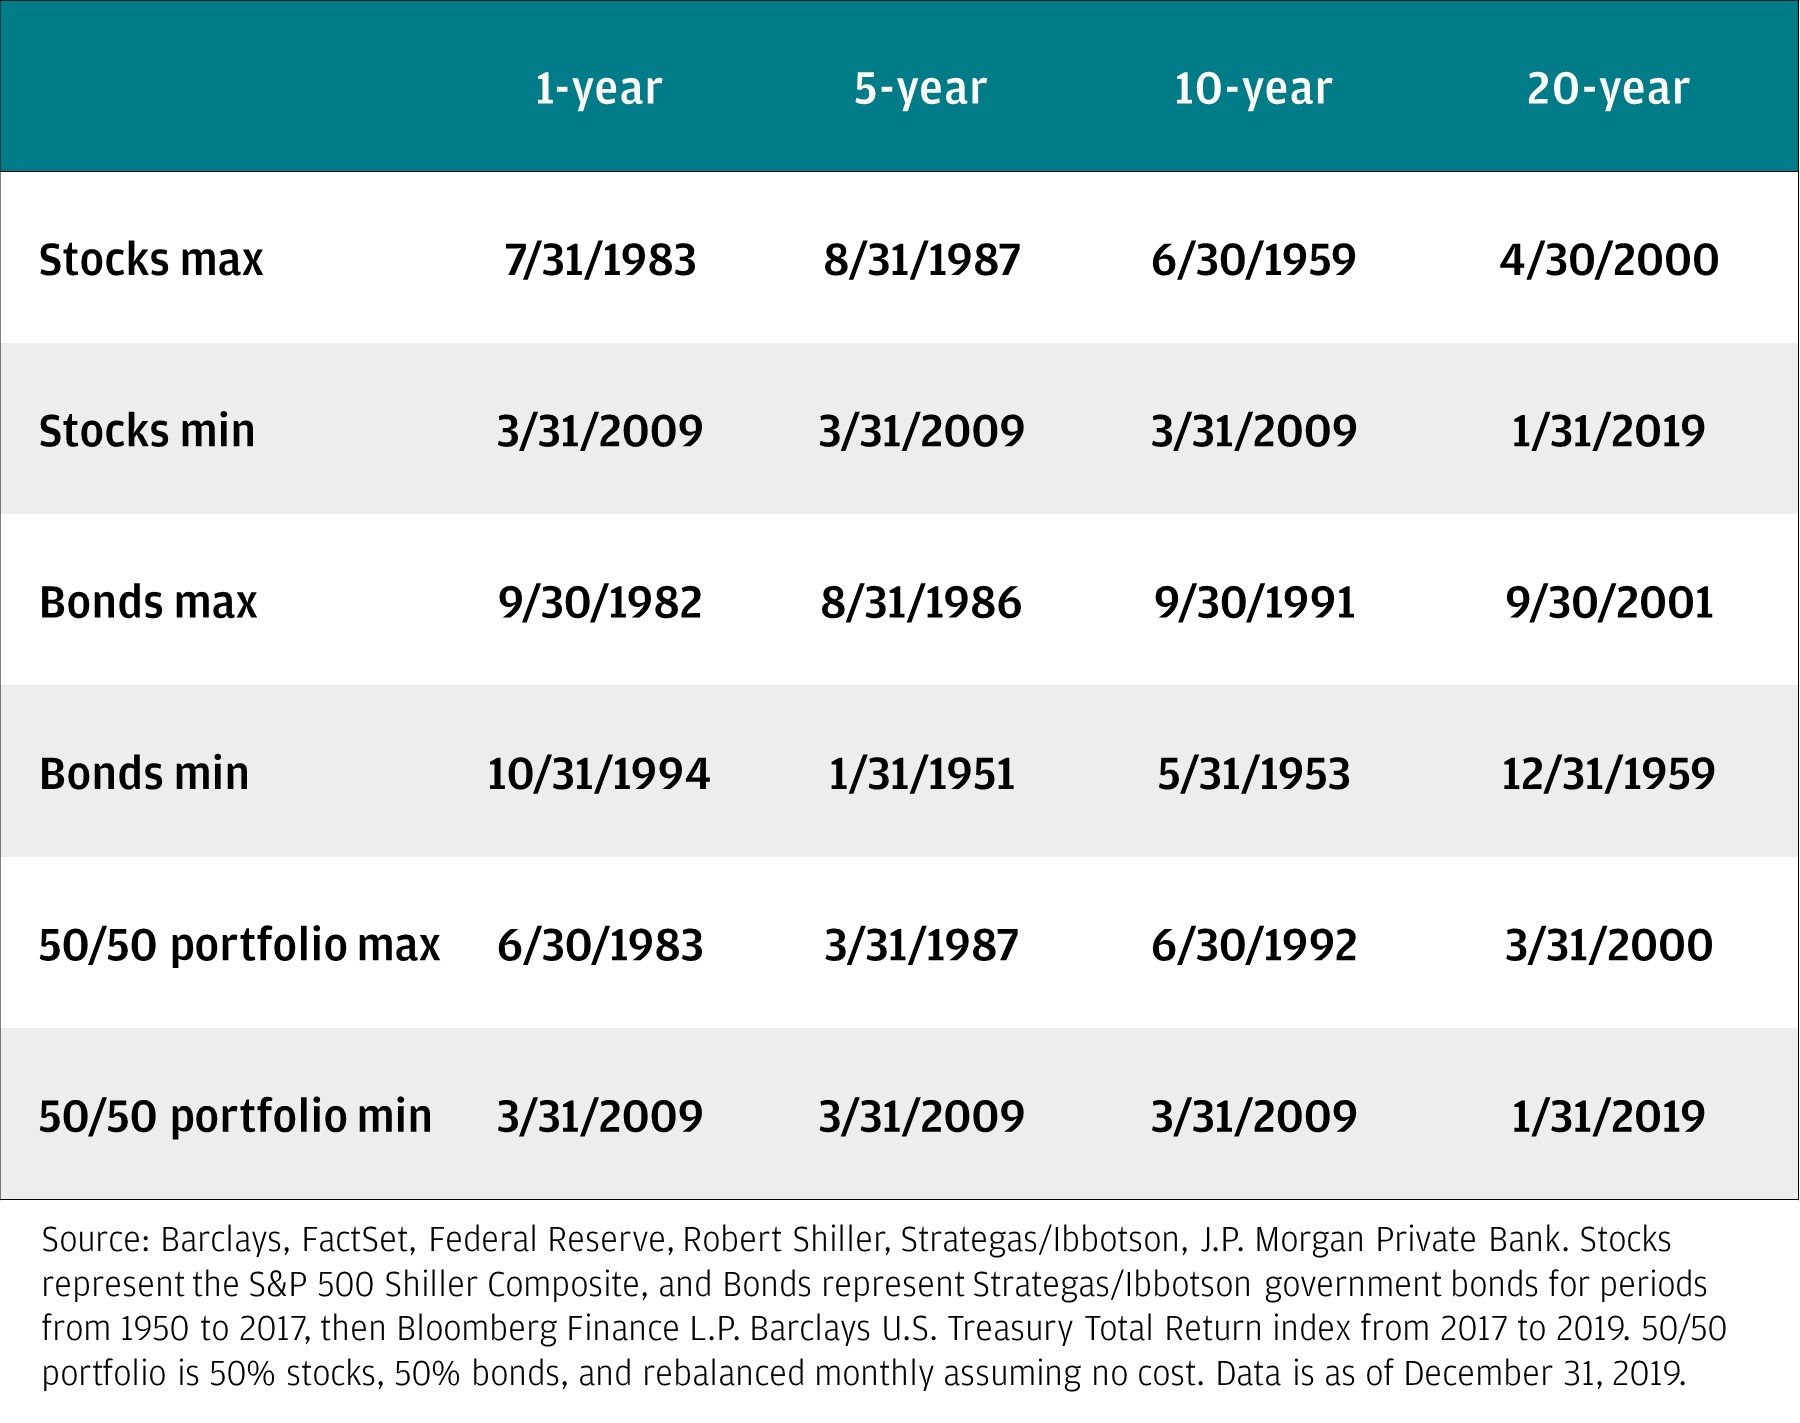 The table shows the dates of the stocks max, the stocks min, the bonds max, the bonds min, the 50/50 portfolio max, and the 50/50 portfolio min for the 1-year, 5-year, 10-year and 20-year rolling returns.